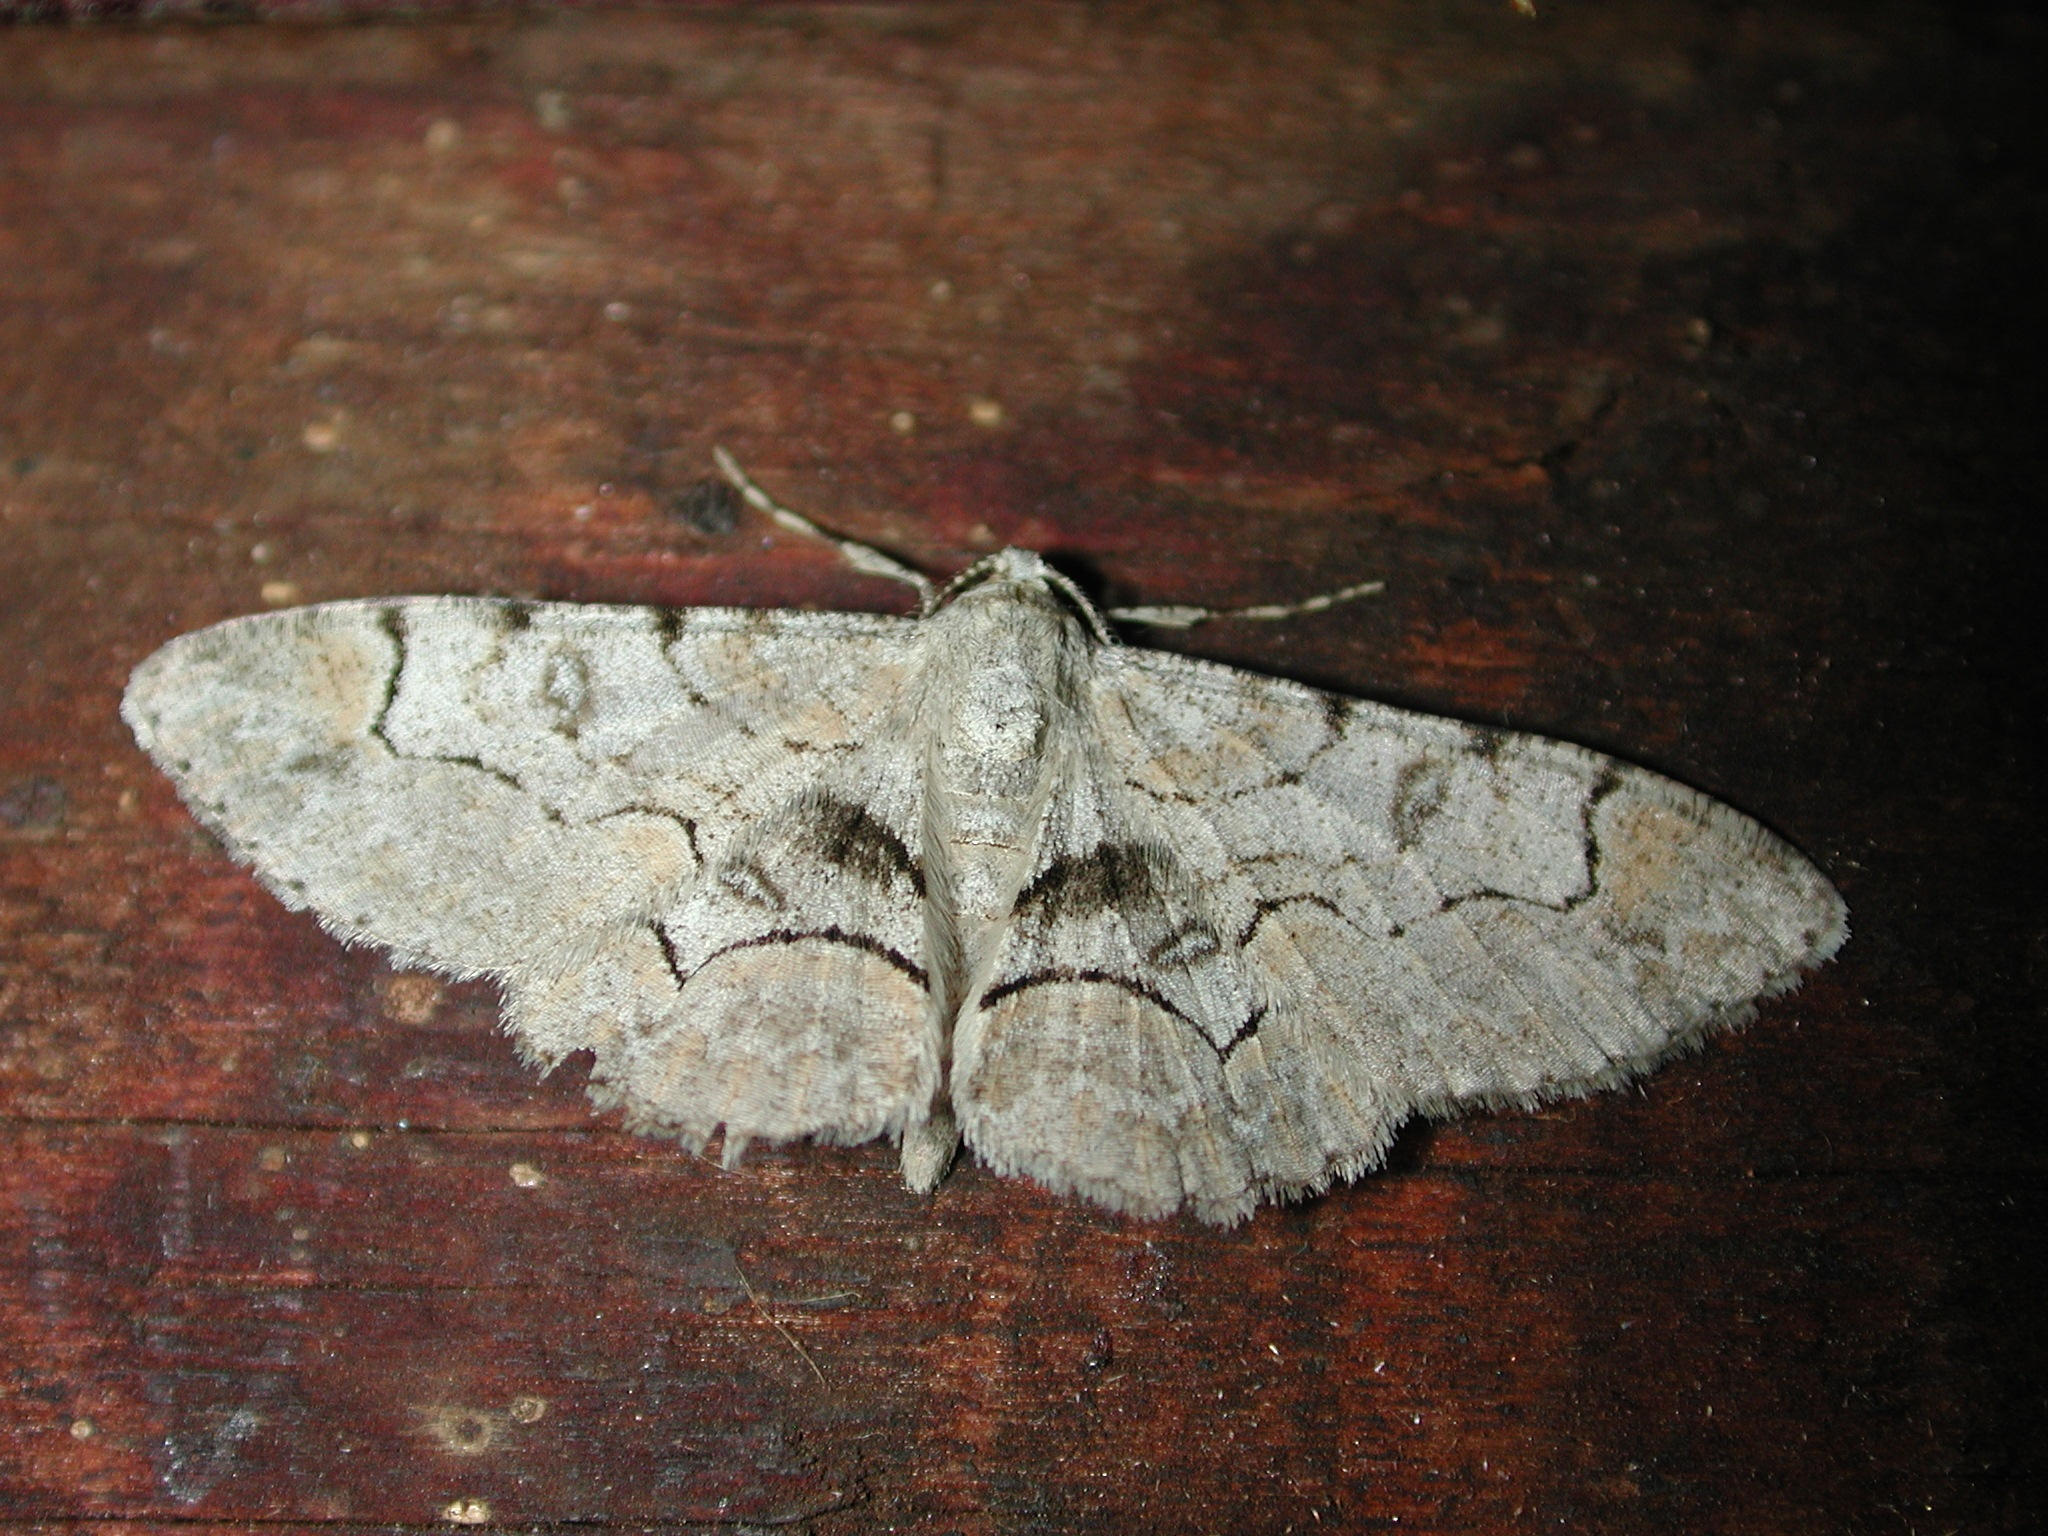 Another moth by Robert Hayes